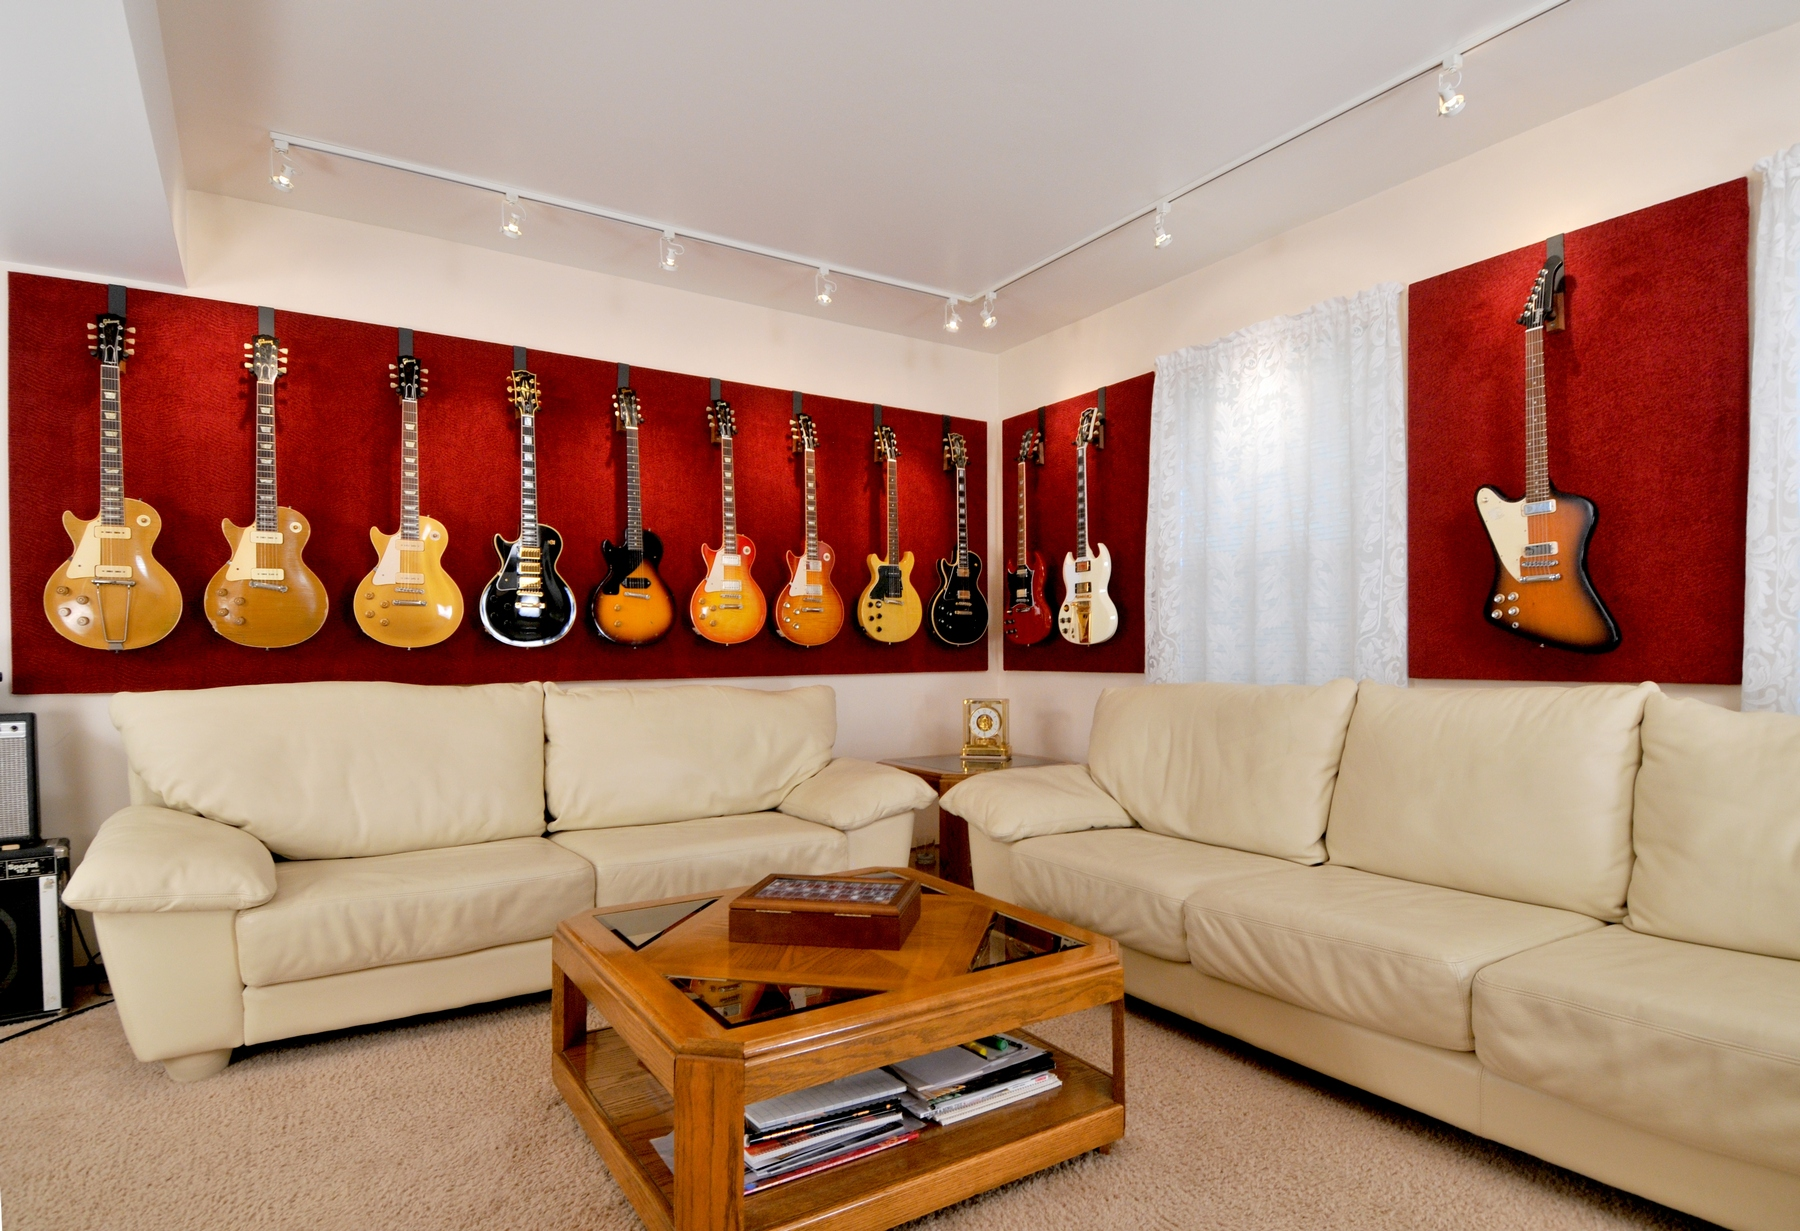 Man Cave Guitar Room : Show us your guitar room man or woman caves page